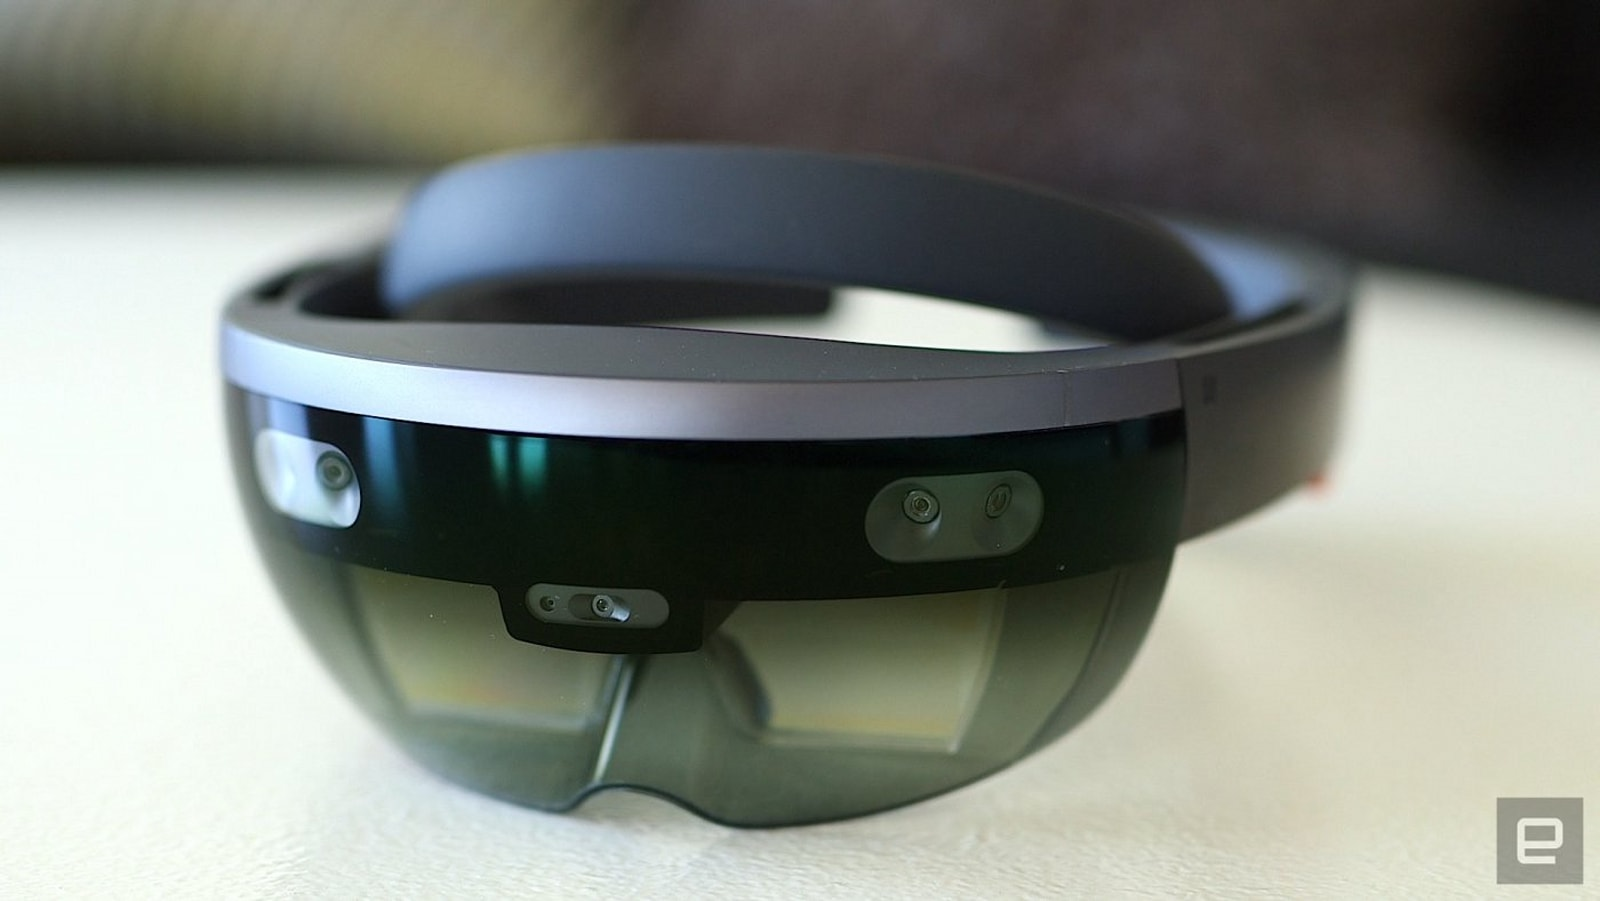 3D audio is the secret to HoloLens' convincing holograms